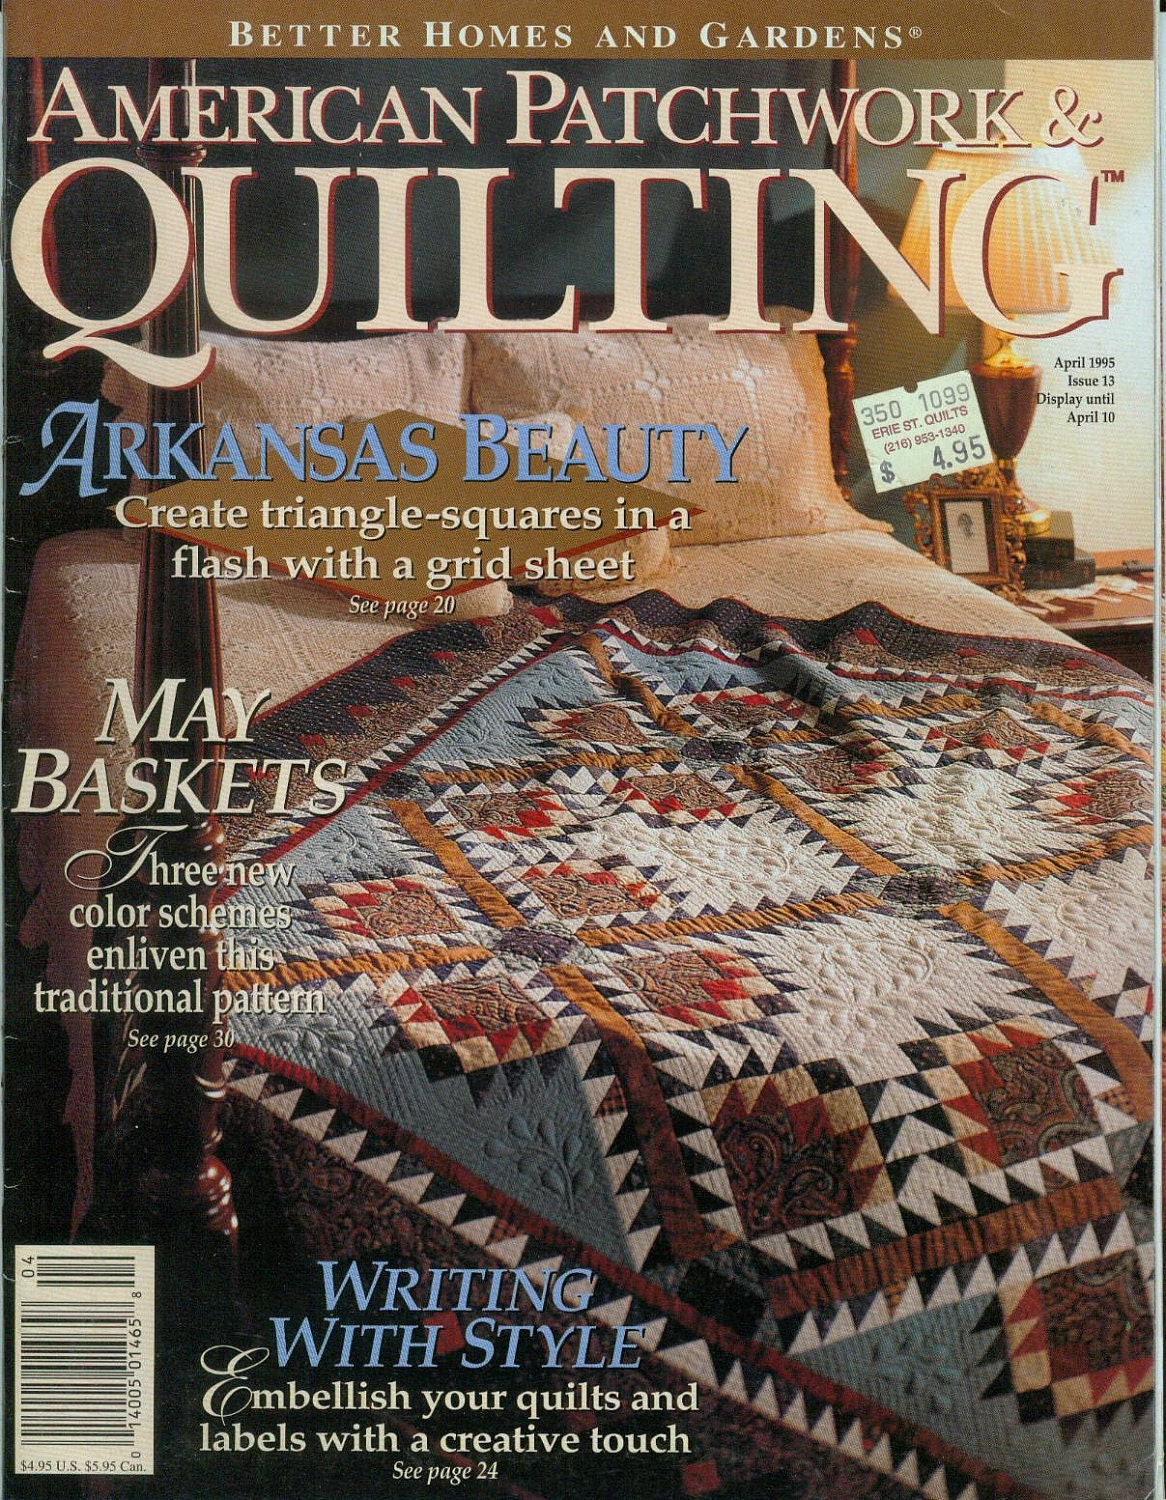 American Patchwork & Quilting - Discount.